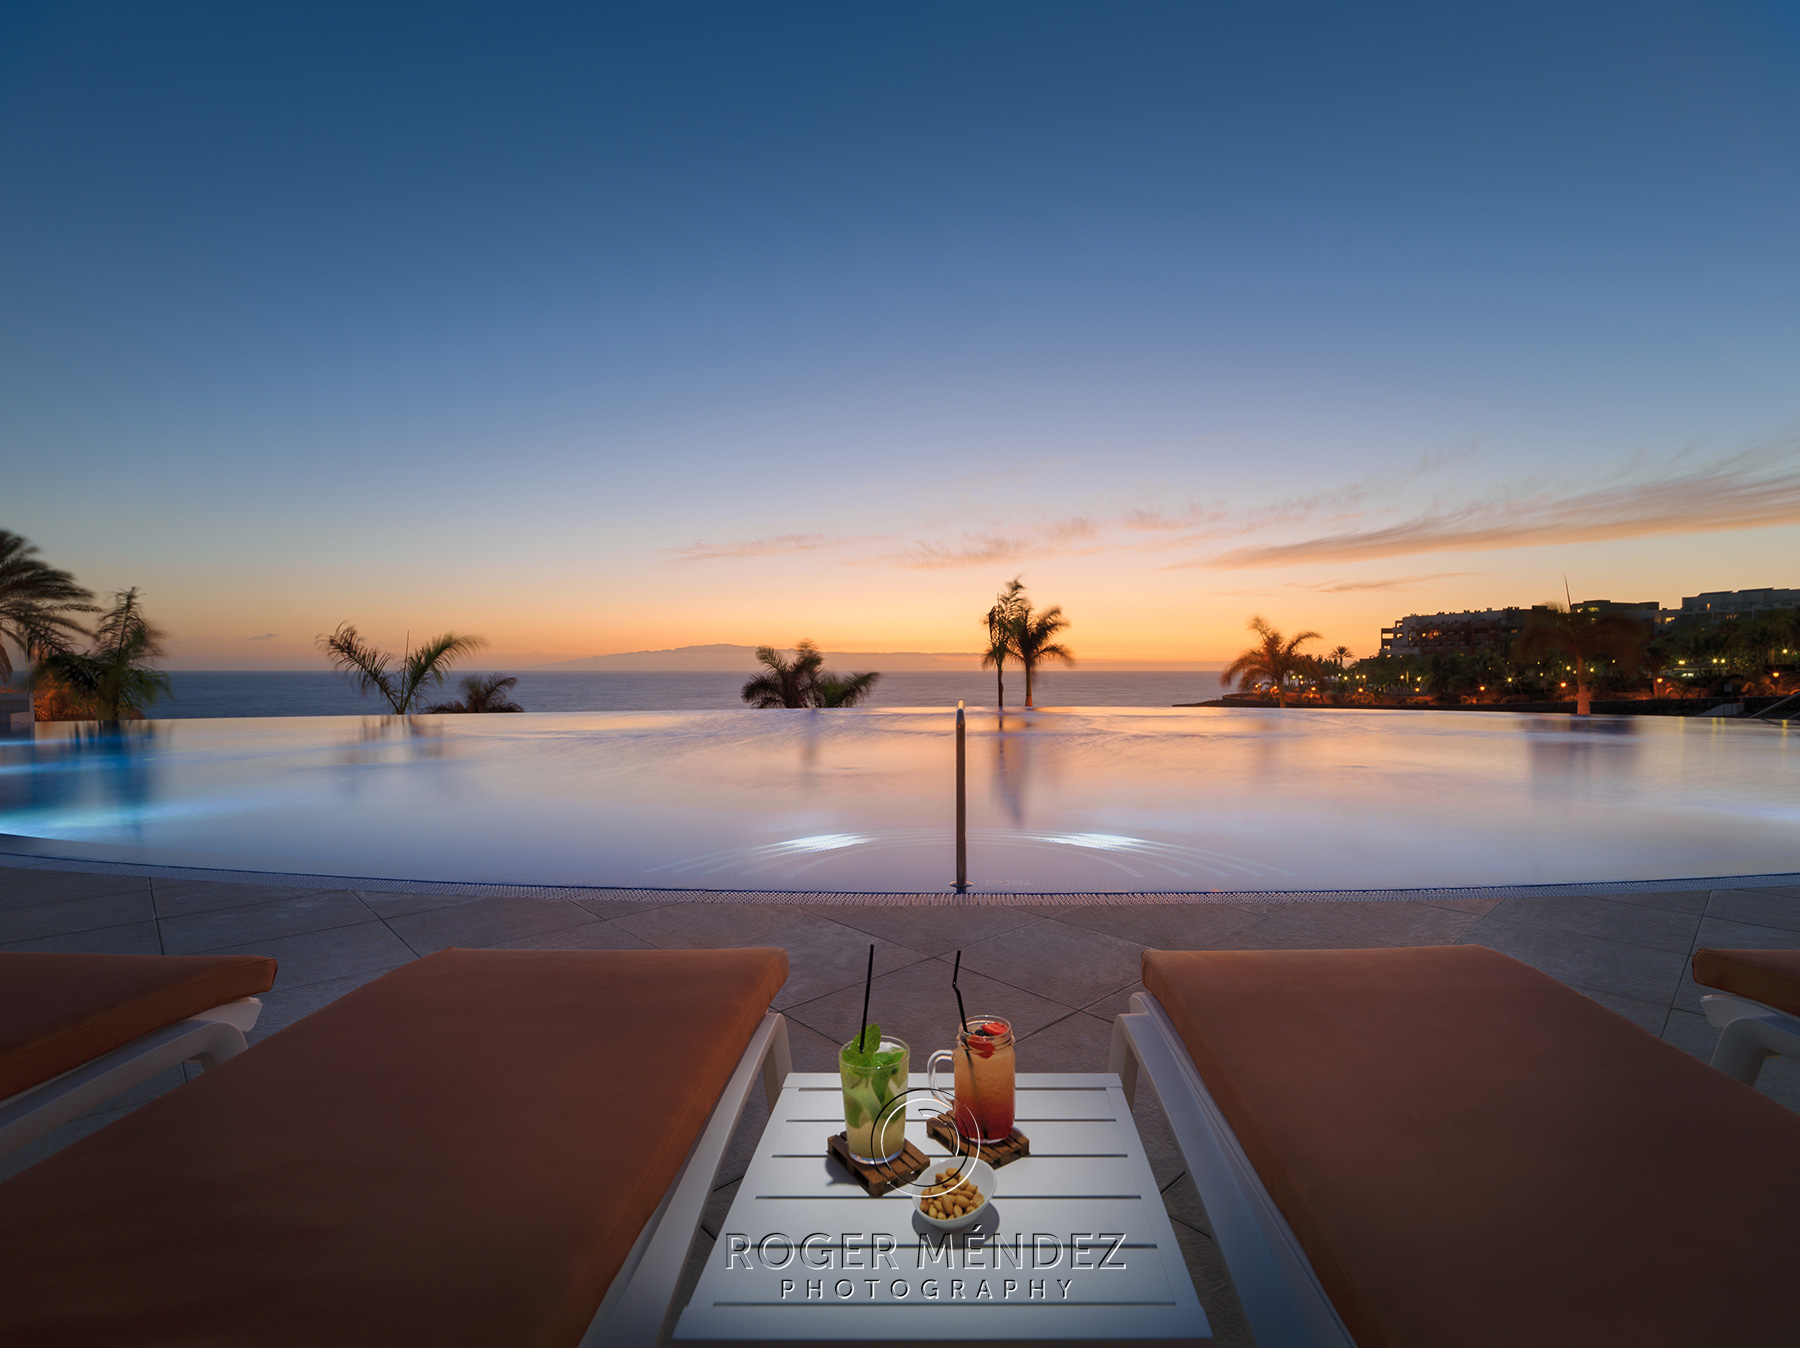 Fotografía H10 Atlantic Sunset Infinity Pool al anochecer